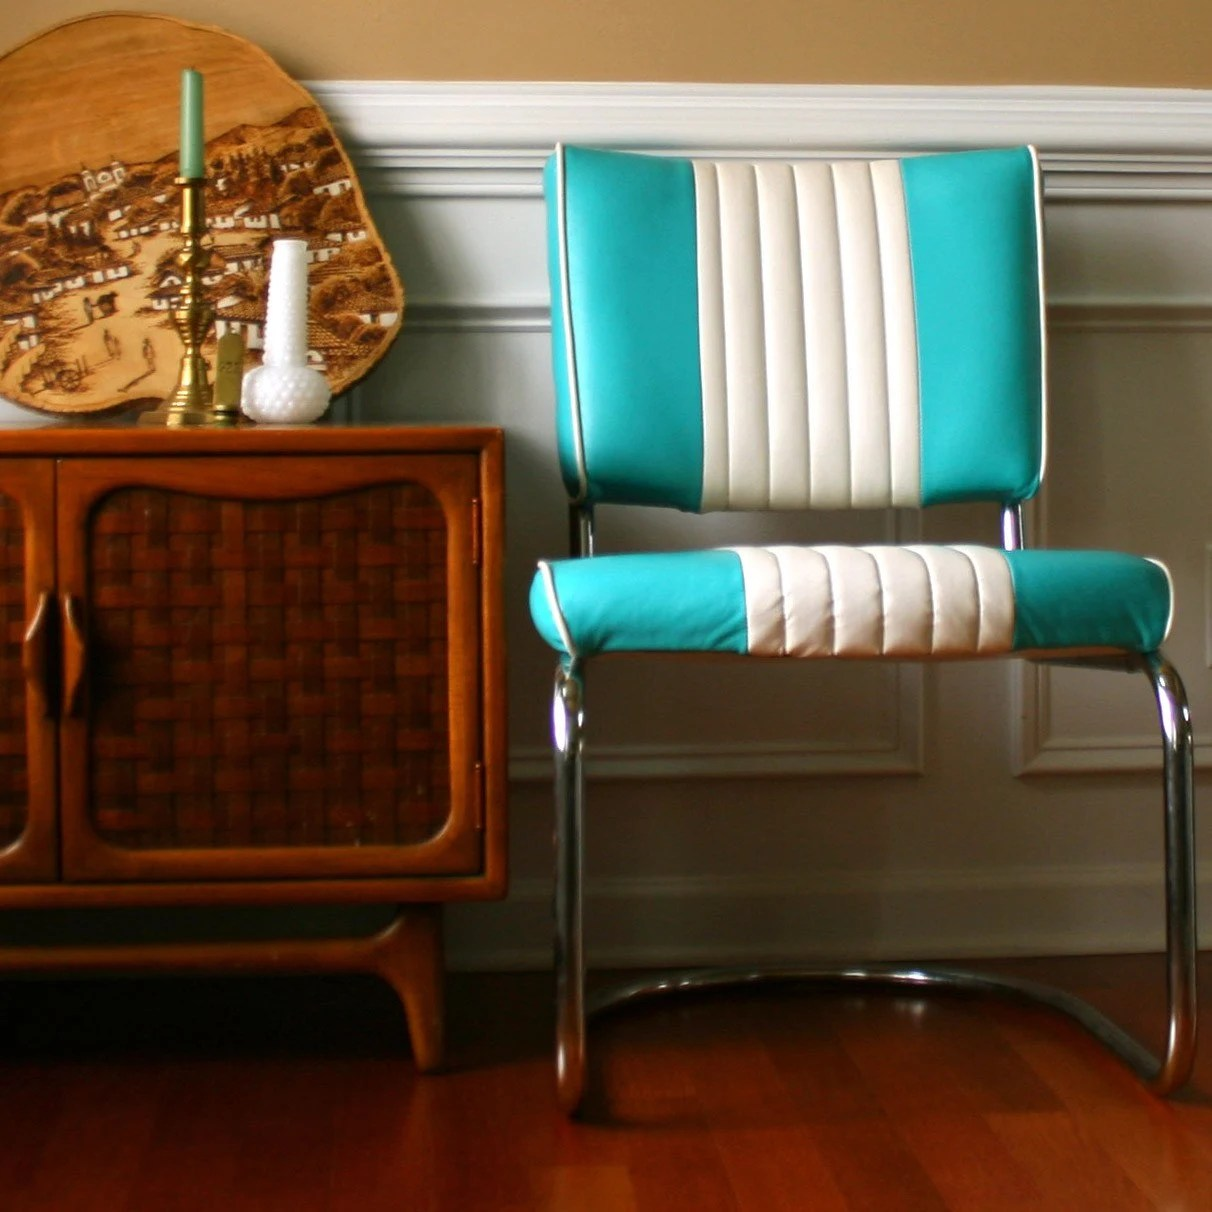 vintage turquoise chair retro diner retro kitchen chairs zoom